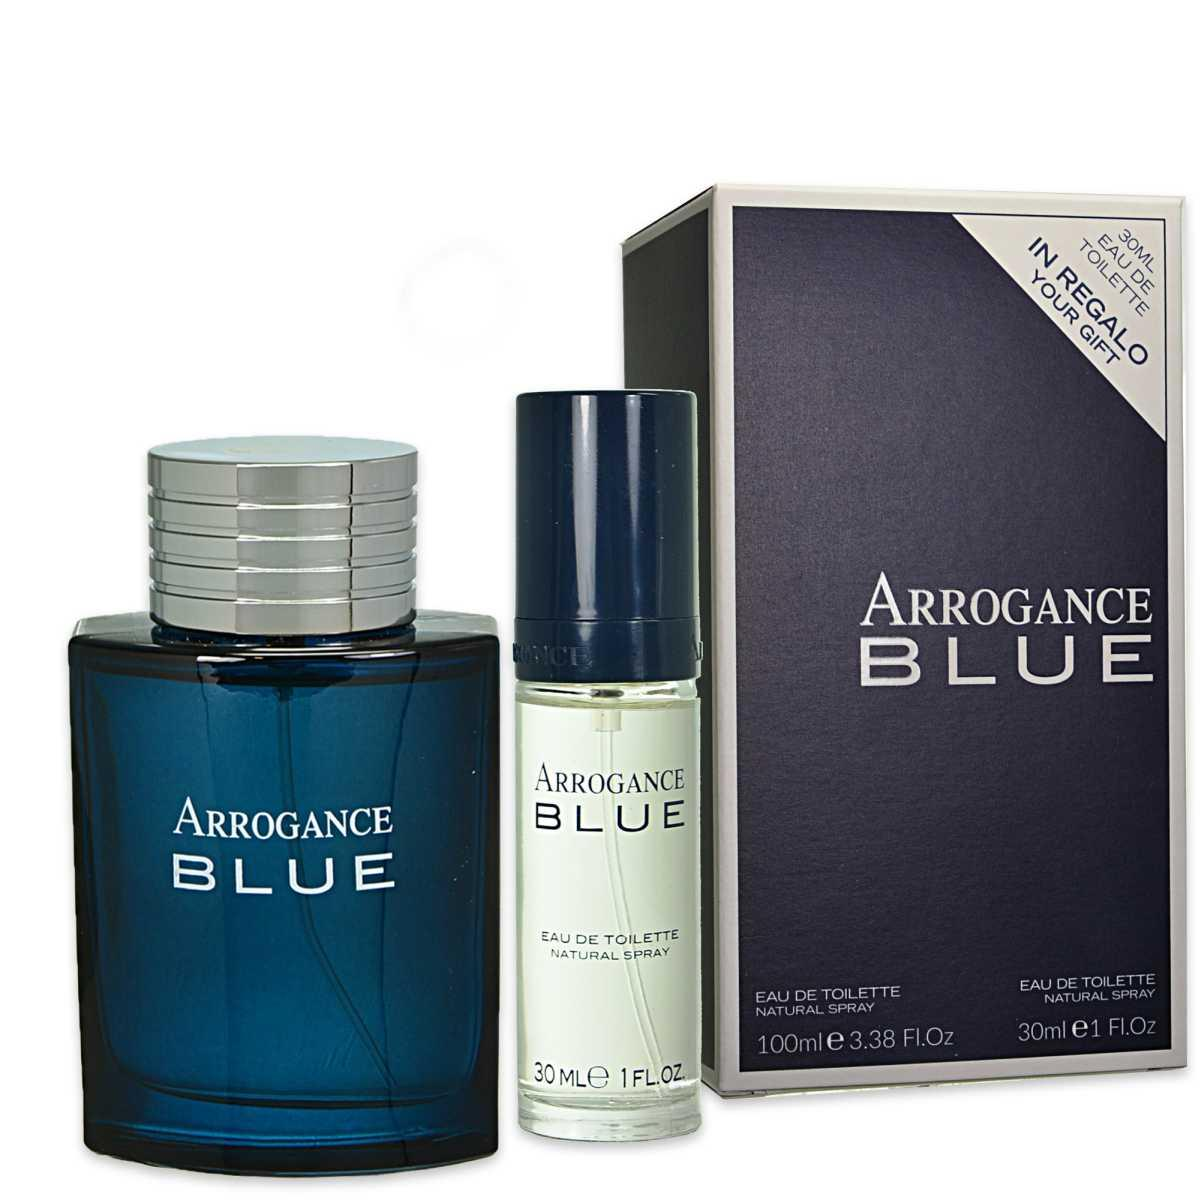 ARROGANCE BLUE EDT EAU DE TOILETTE 100ml E 30ml IN REGALO PROFUMO UOMO